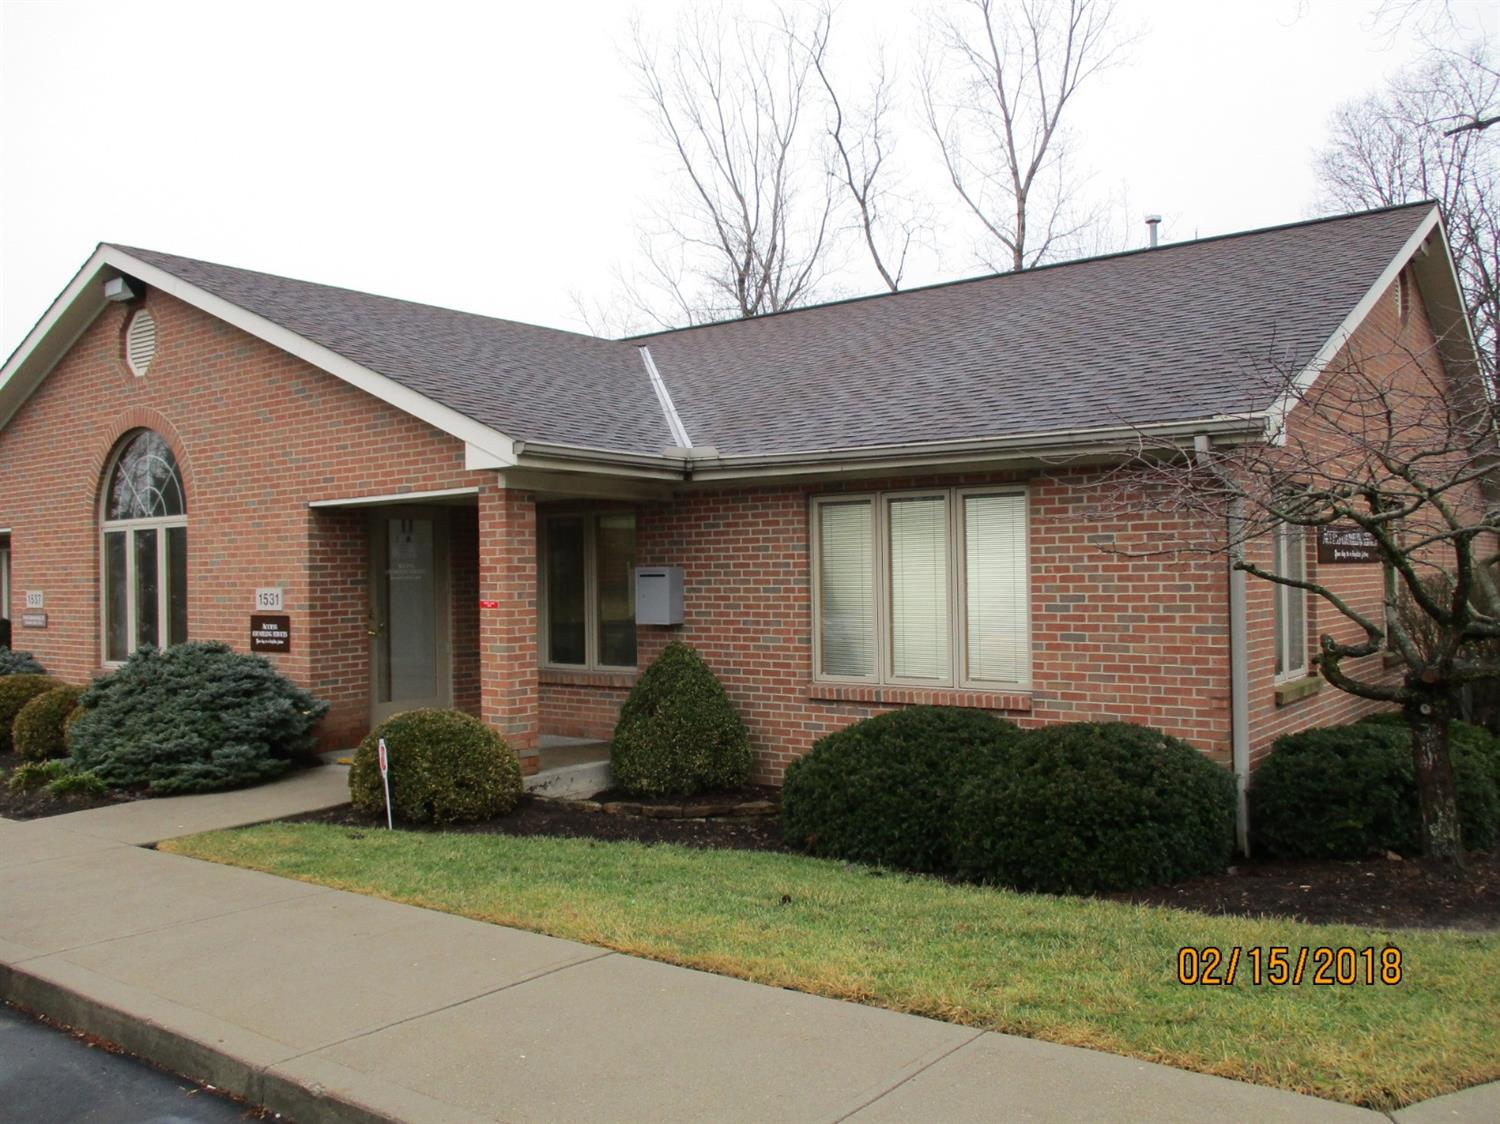 Photo 1 for 1531 S Breiel Blvd Middletown South, OH 45044